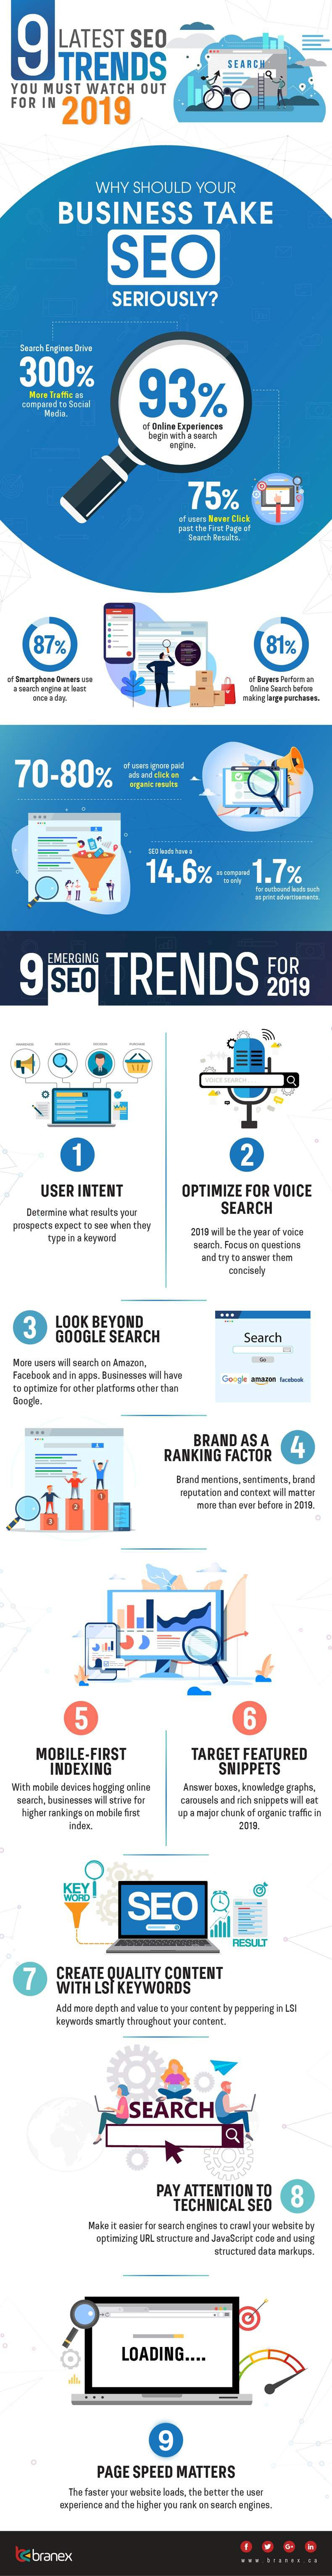 Nine SEO Trends to Keep Pace With in 2019